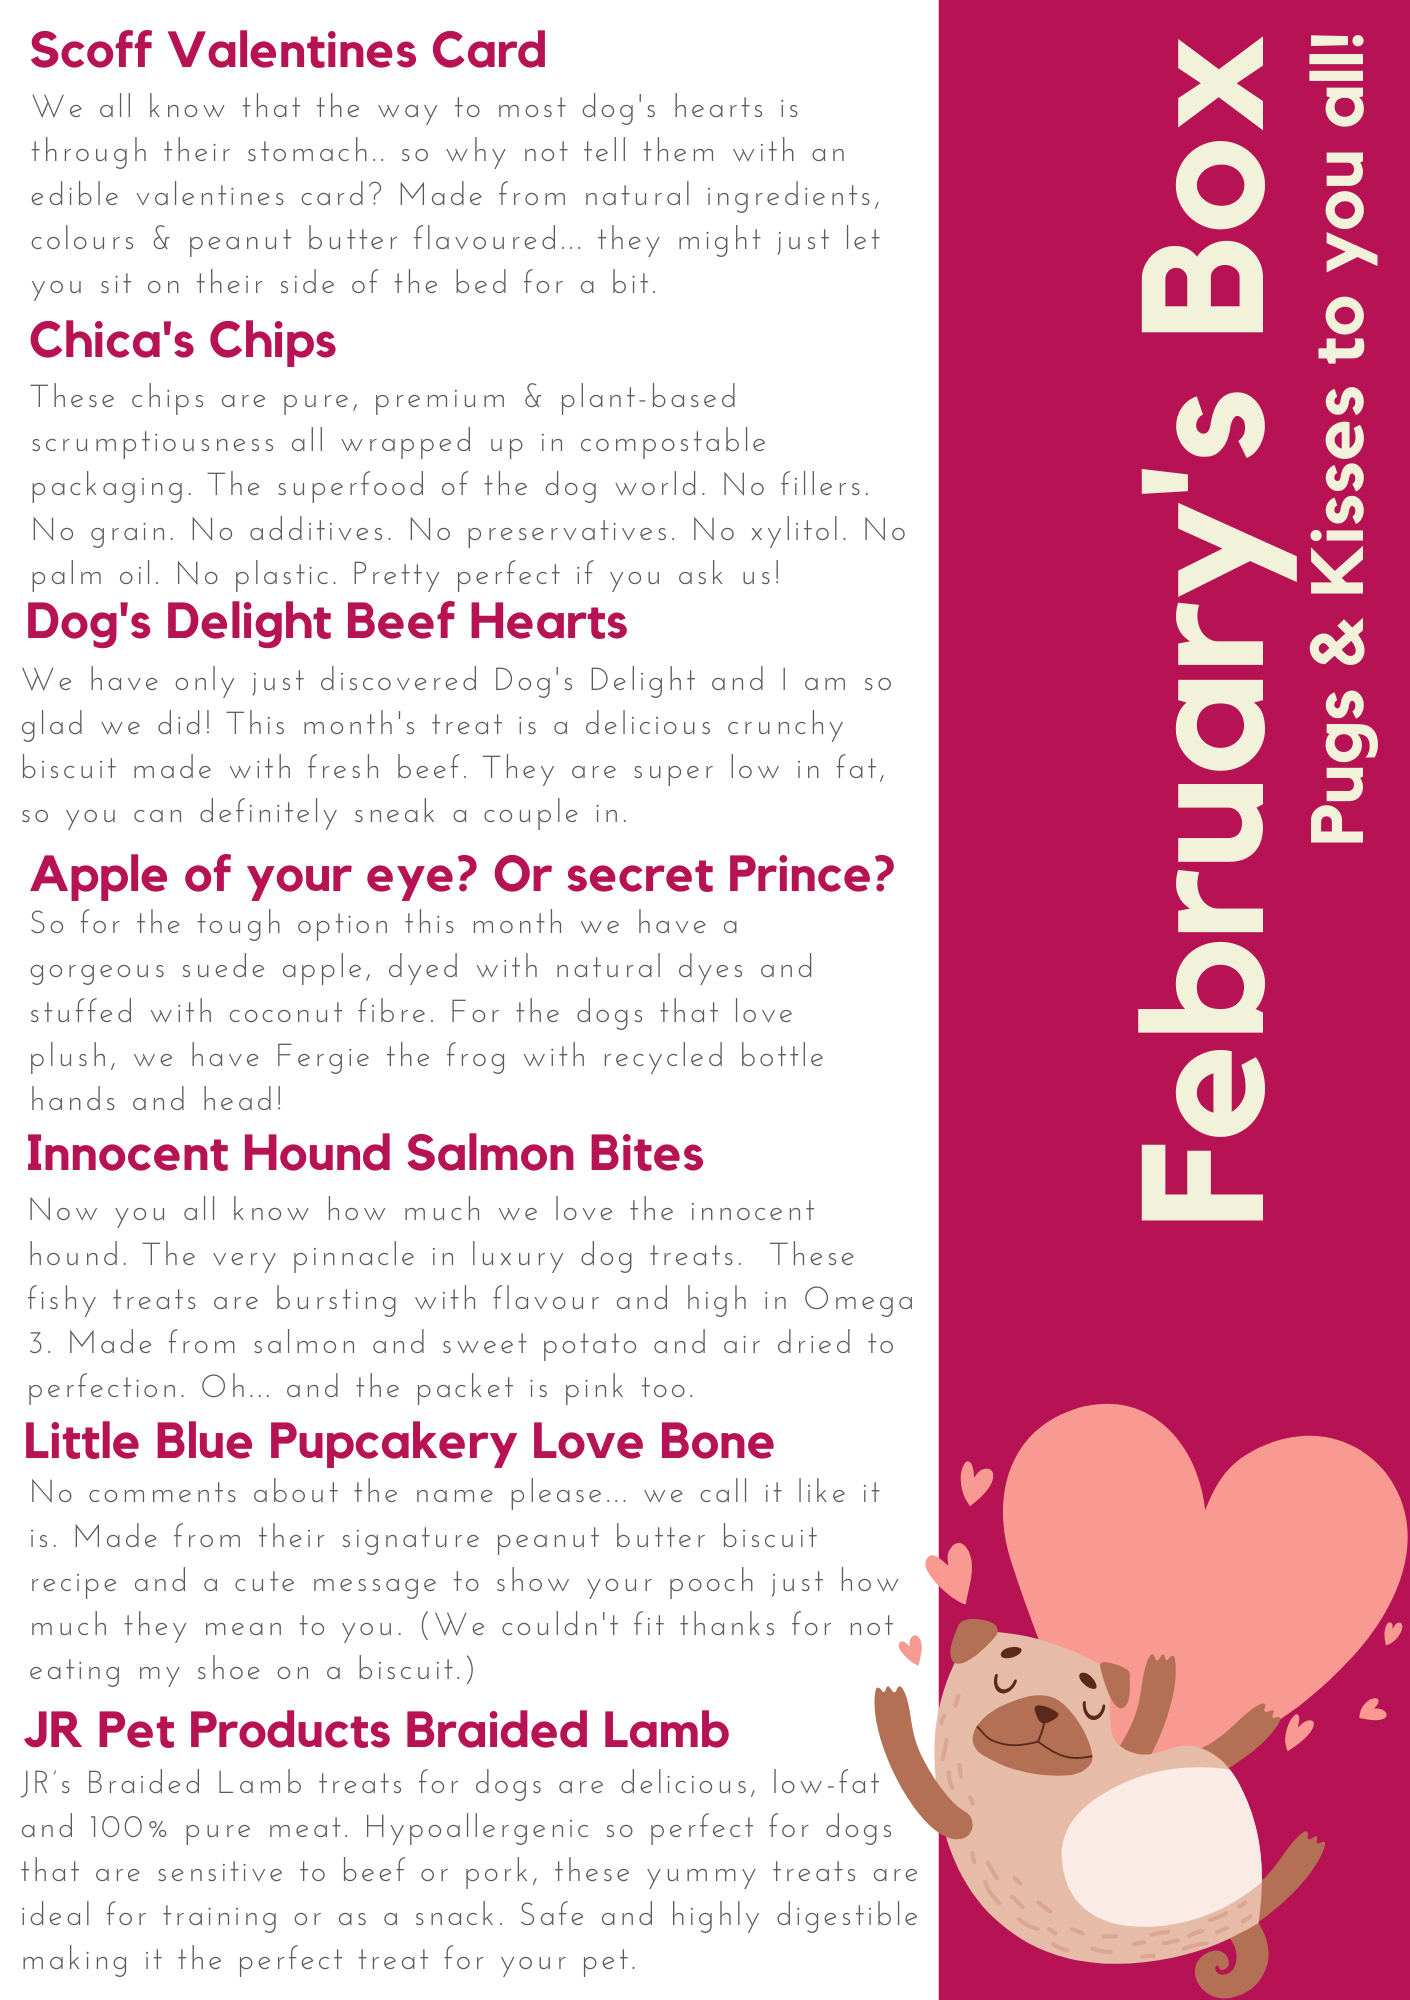 Collar Club Natural Subscription Box for Dogs - Valentine's Edition